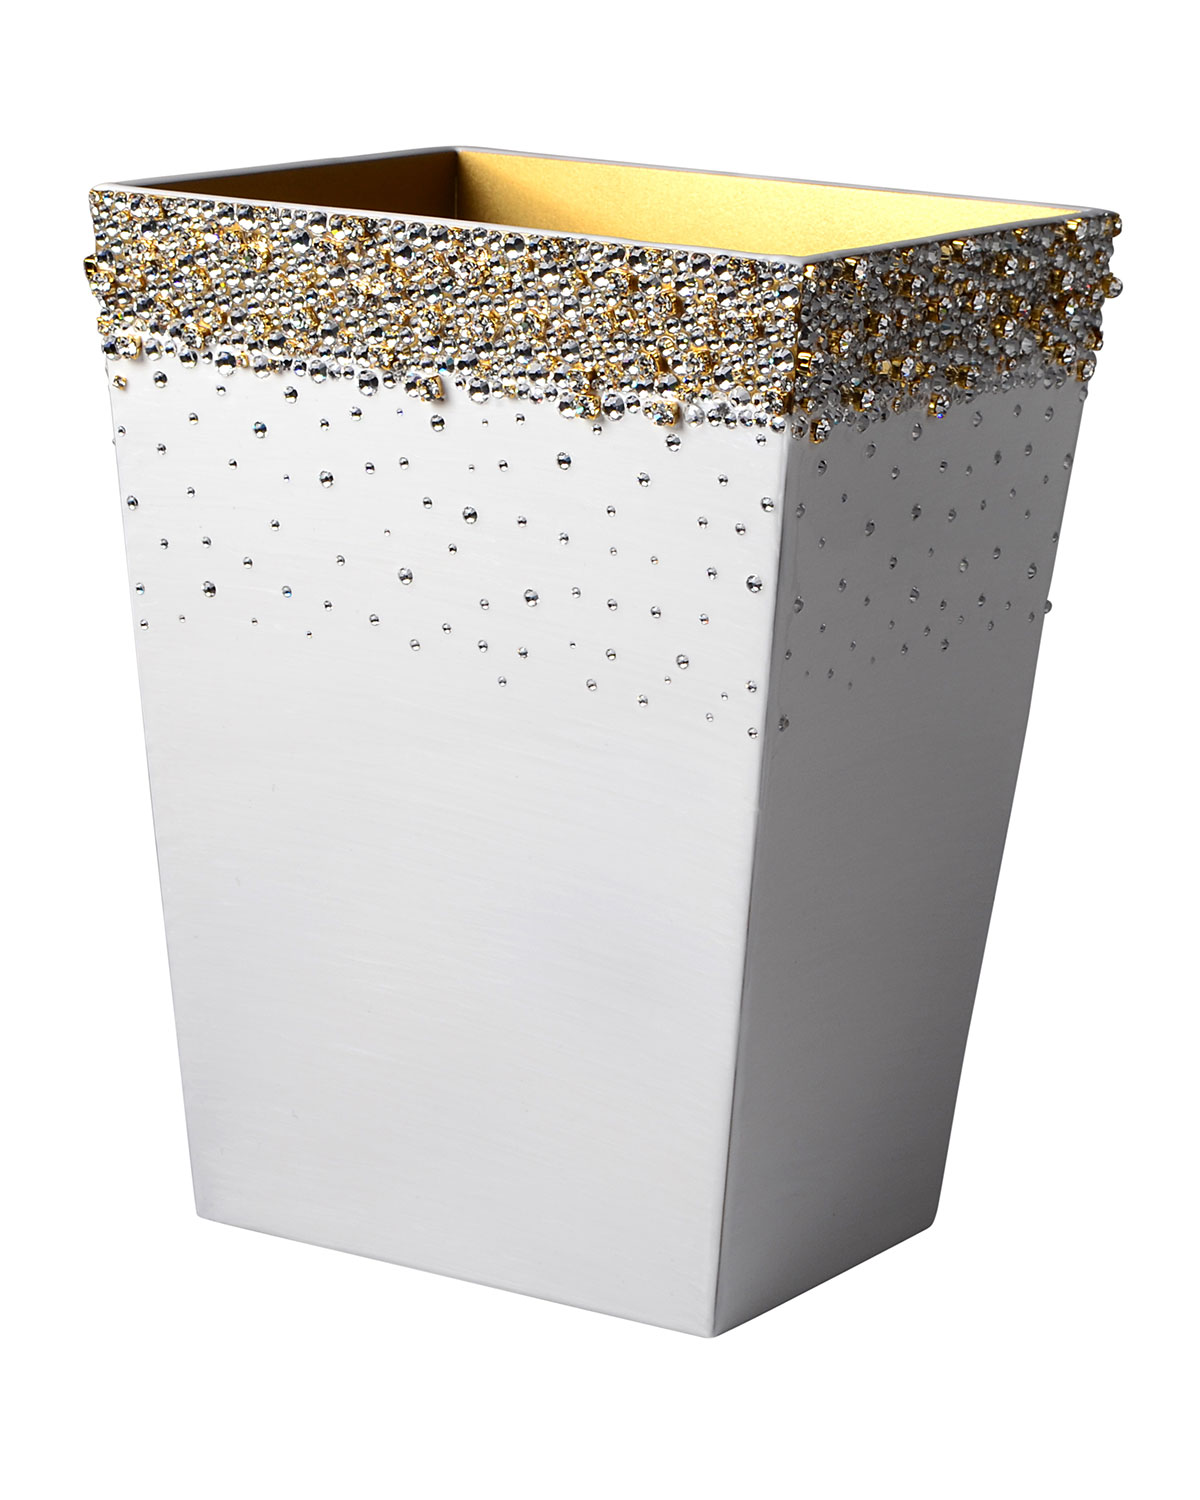 Mike & Ally DUCHESS WASTEBASKET AND LINER